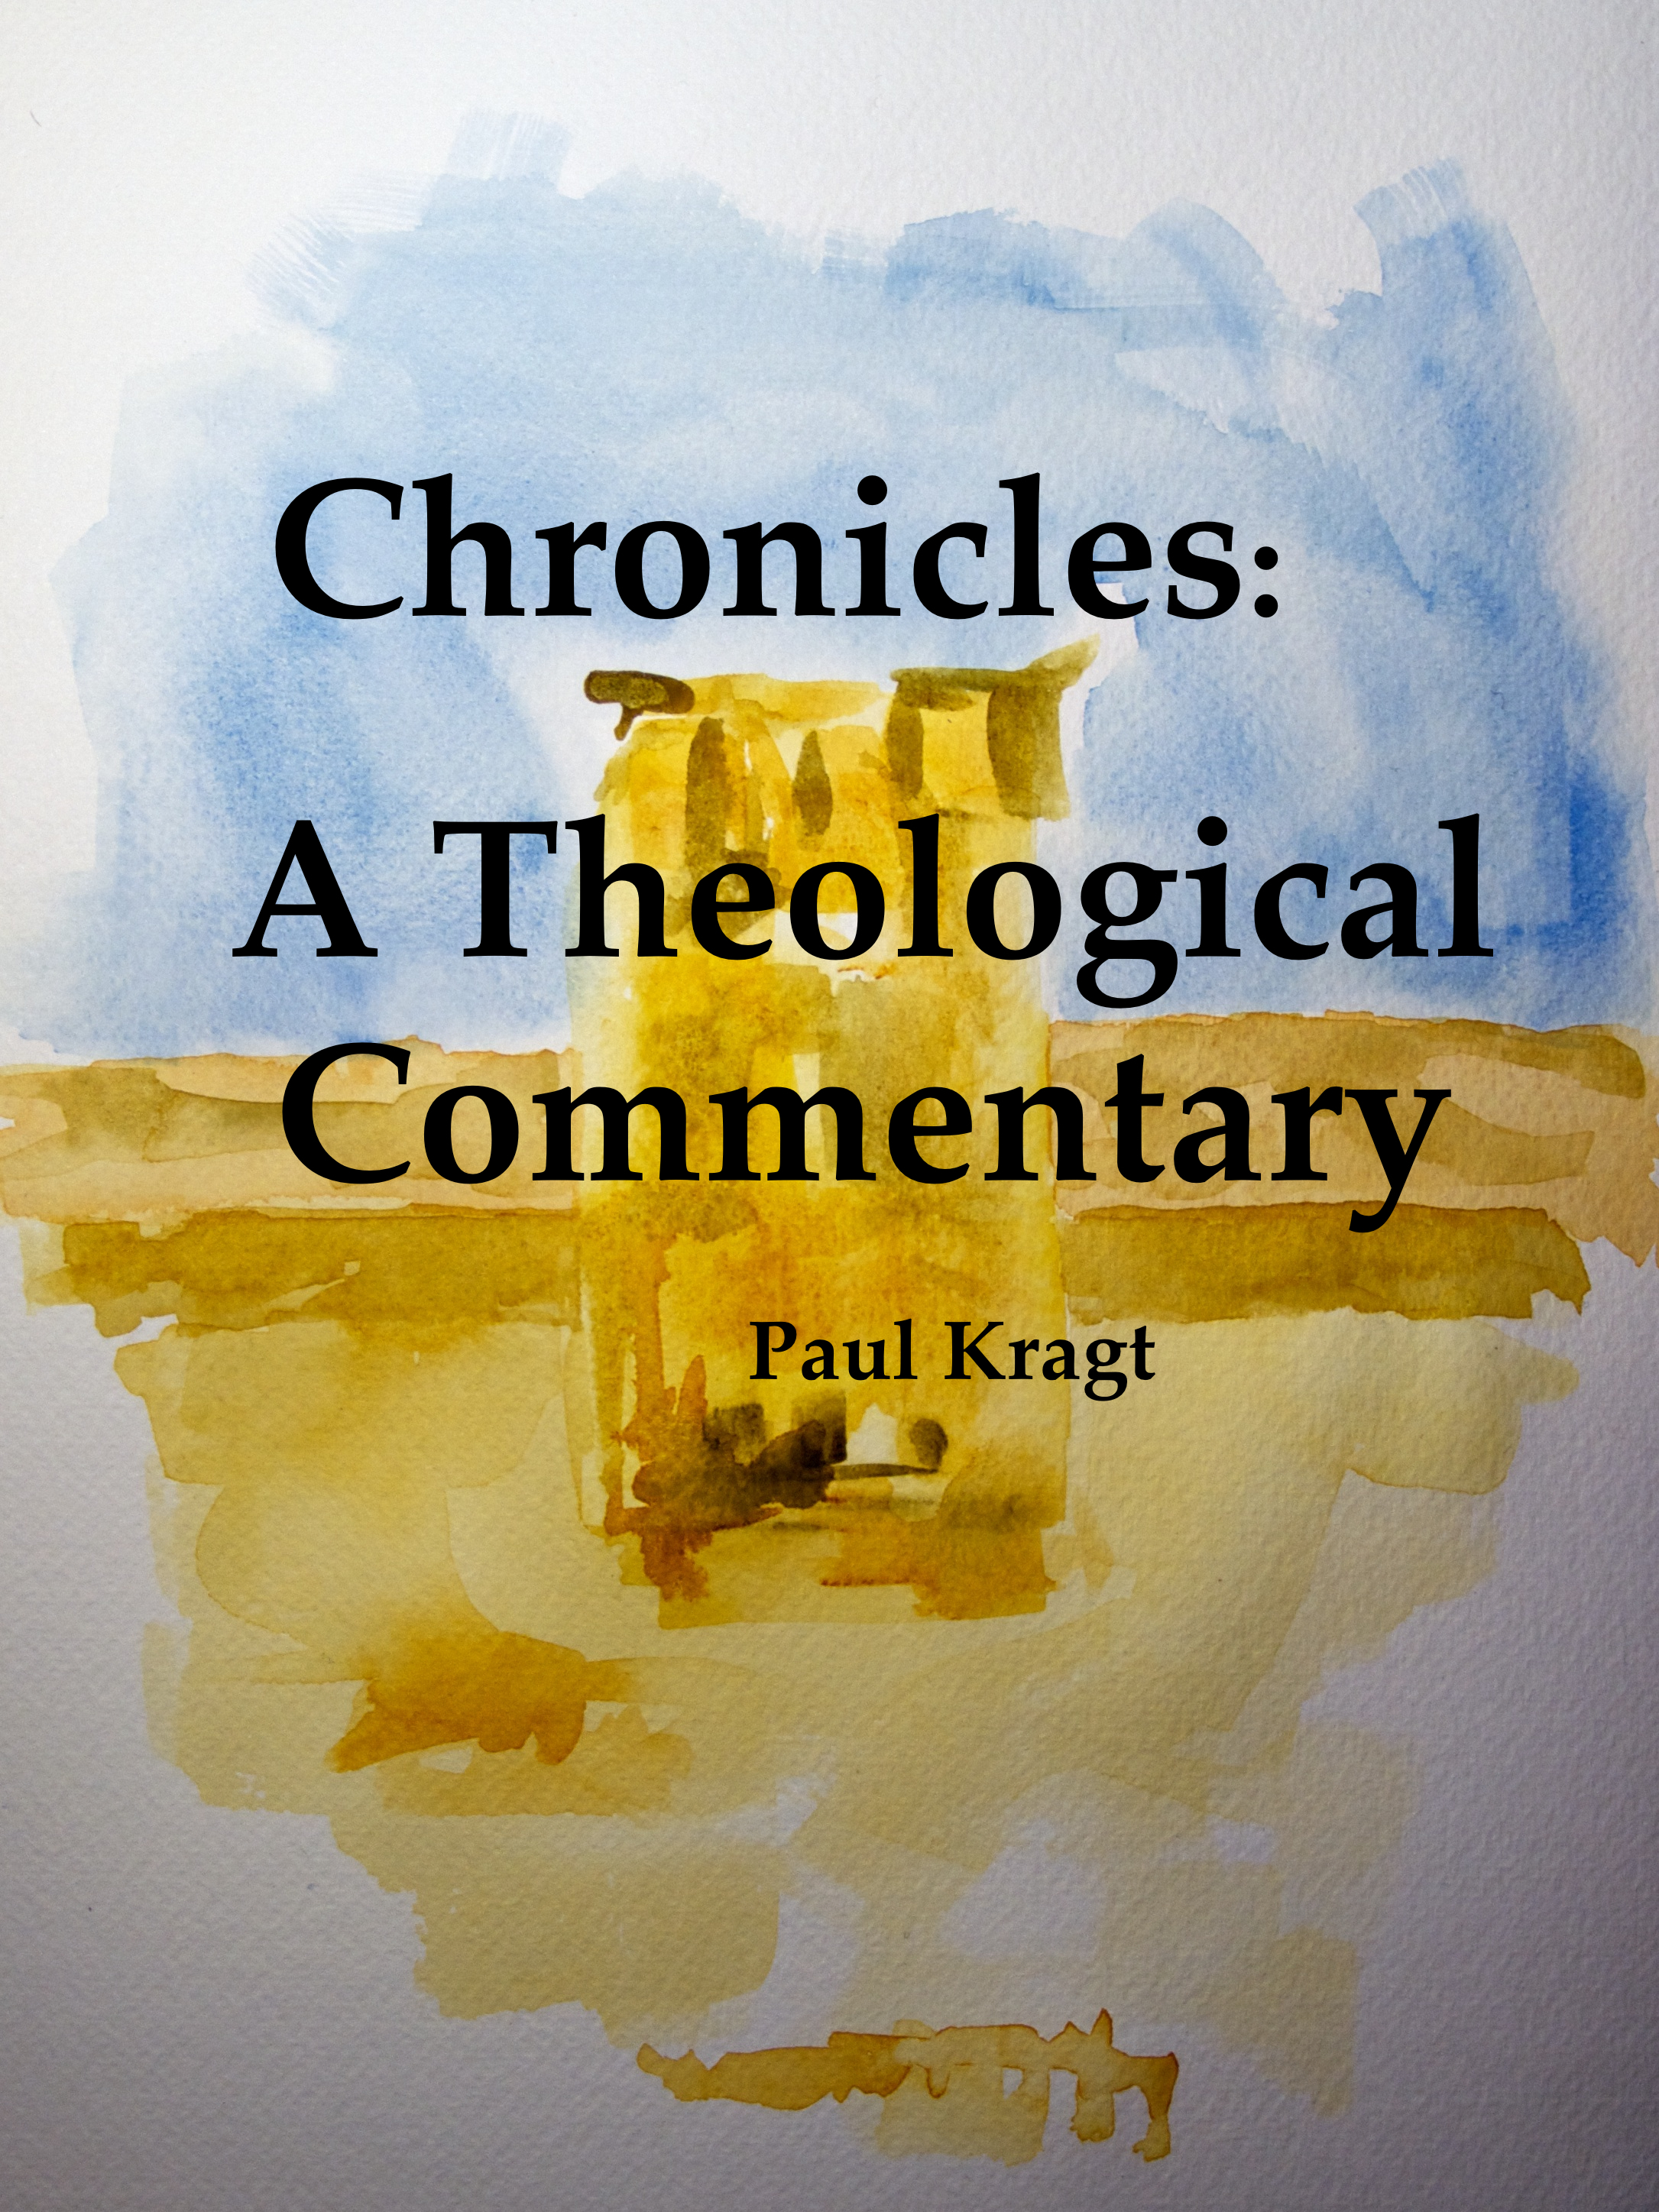 Chronicles: A Theological Commentary Paul Kragt